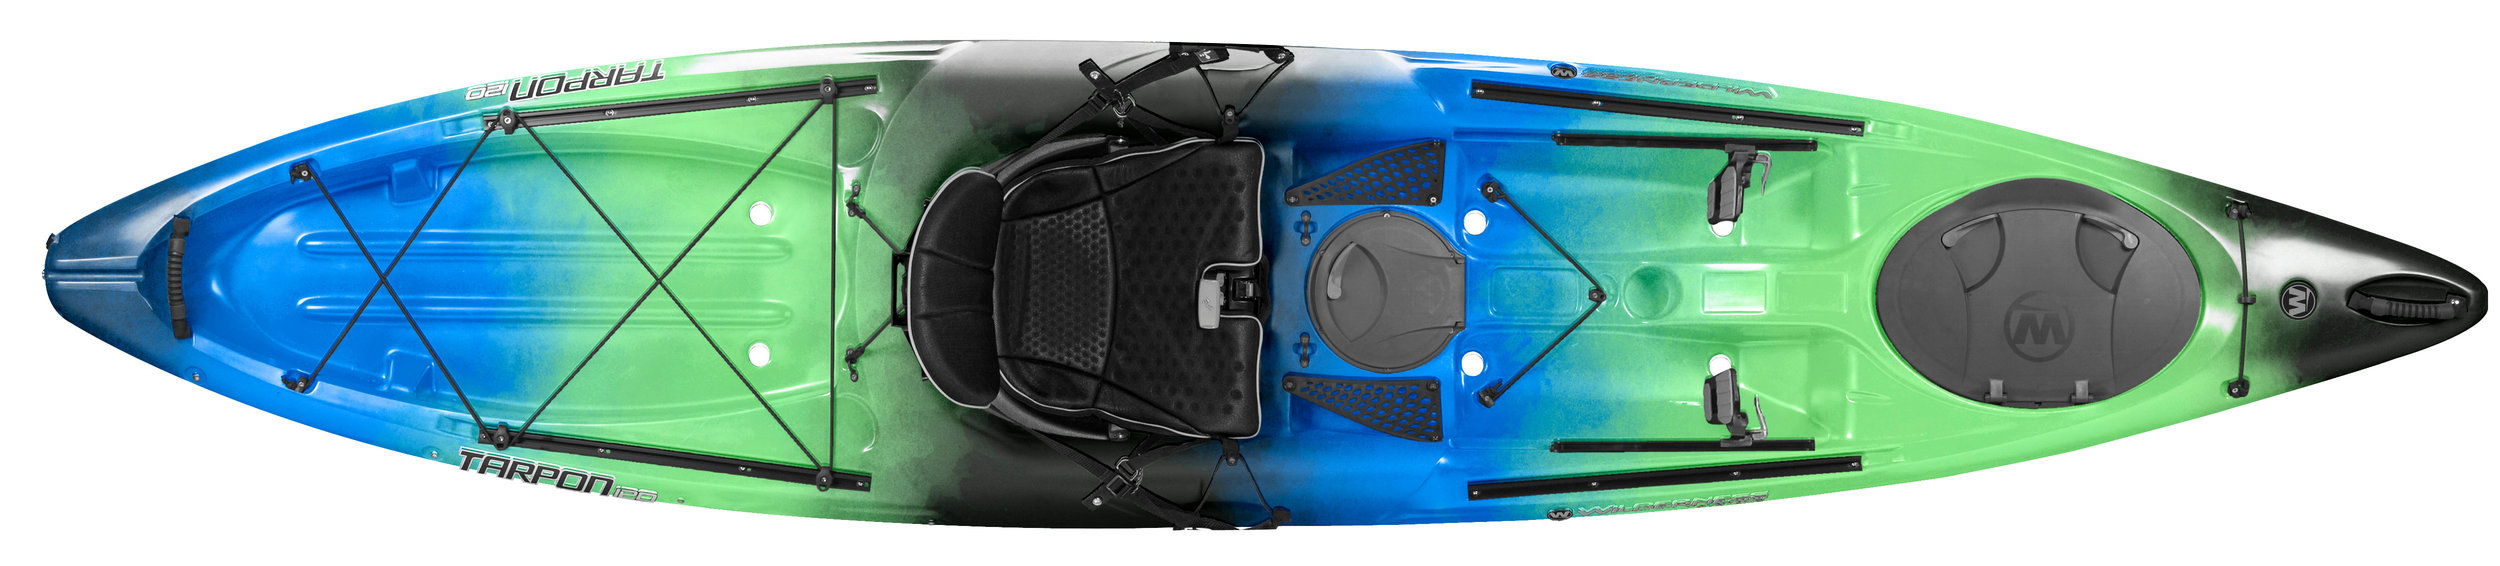 Tarpon 120:  The most popular Tarpon because of its manageable size. Efficient layout leaves plenty of room for paddlers and their gear, with features to accommodate a variety of hobbies.